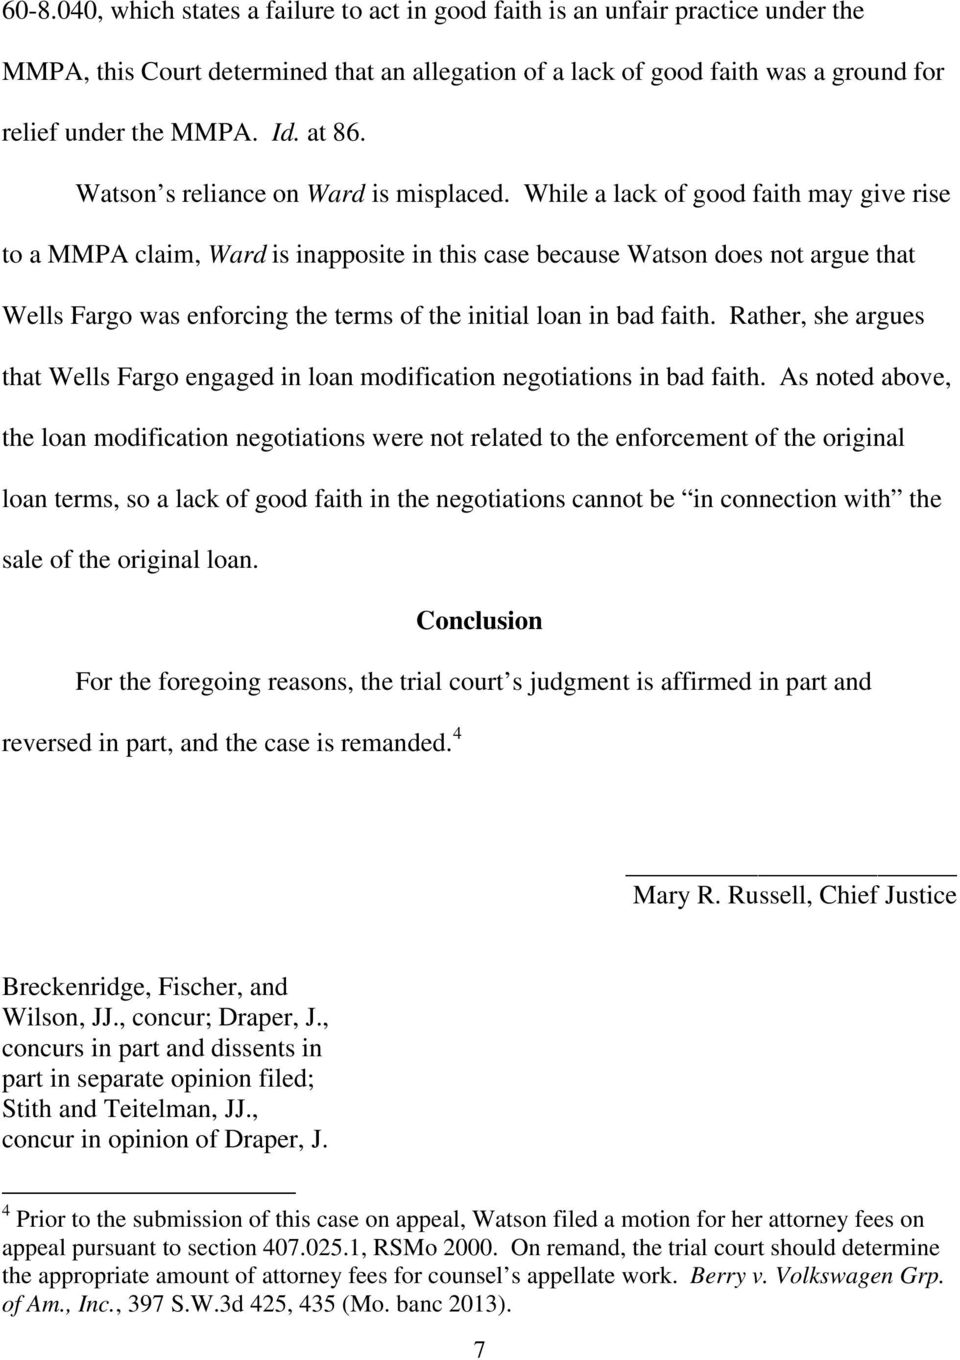 While a lack of good faith may give rise to a MMPA claim, Ward is inapposite in this case because Watson does not argue that Wells Fargo was enforcing the terms of the initial loan in bad faith.